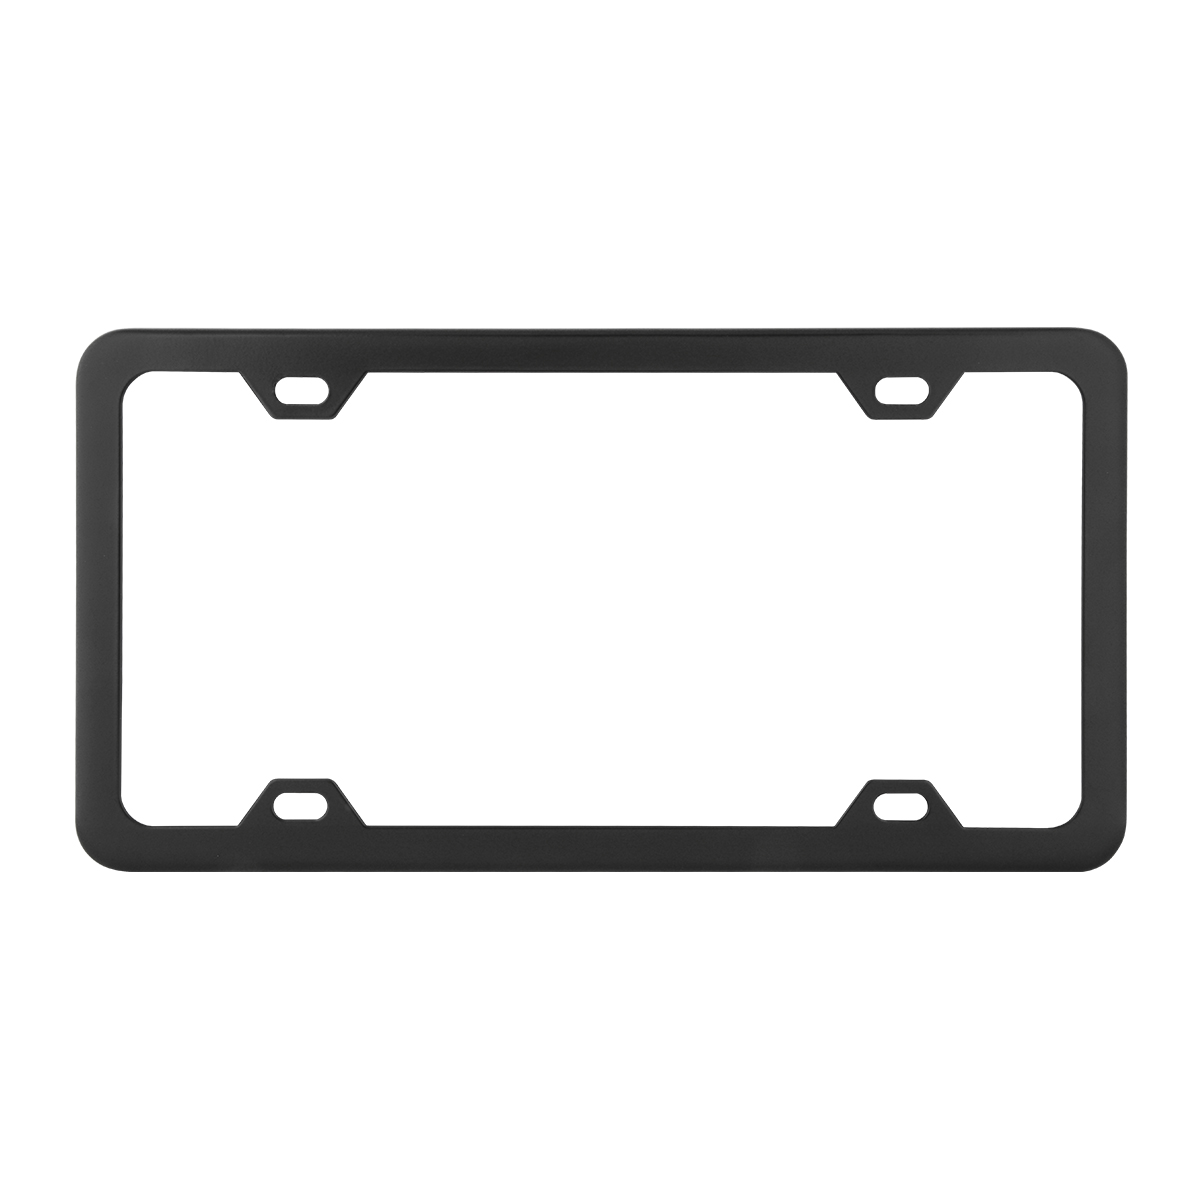 60414 Plain Matte Black 4 Hole License Plate Frame